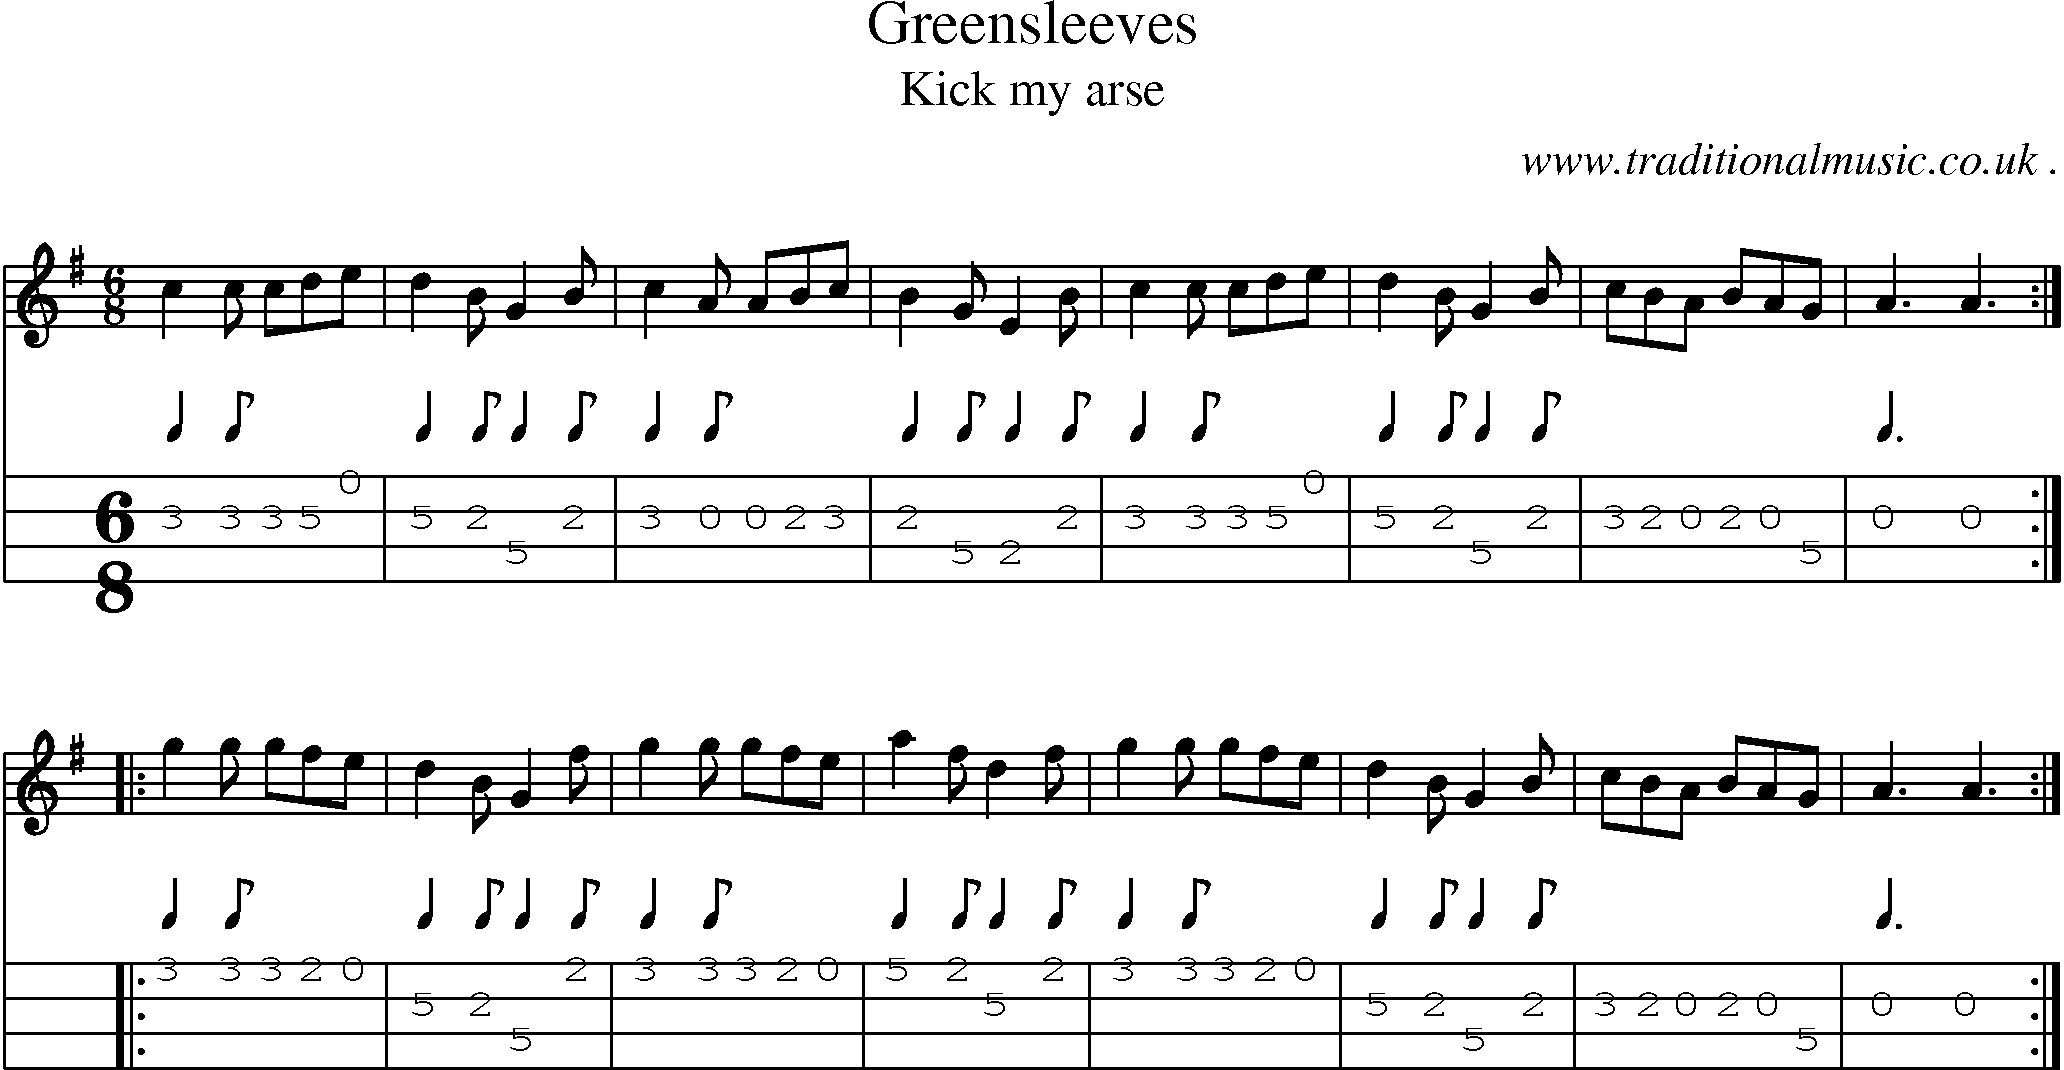 Folk and Traditional Music, Sheet-Music, Mandolin tab, midi, mp3 and PDF for: Greensleeves